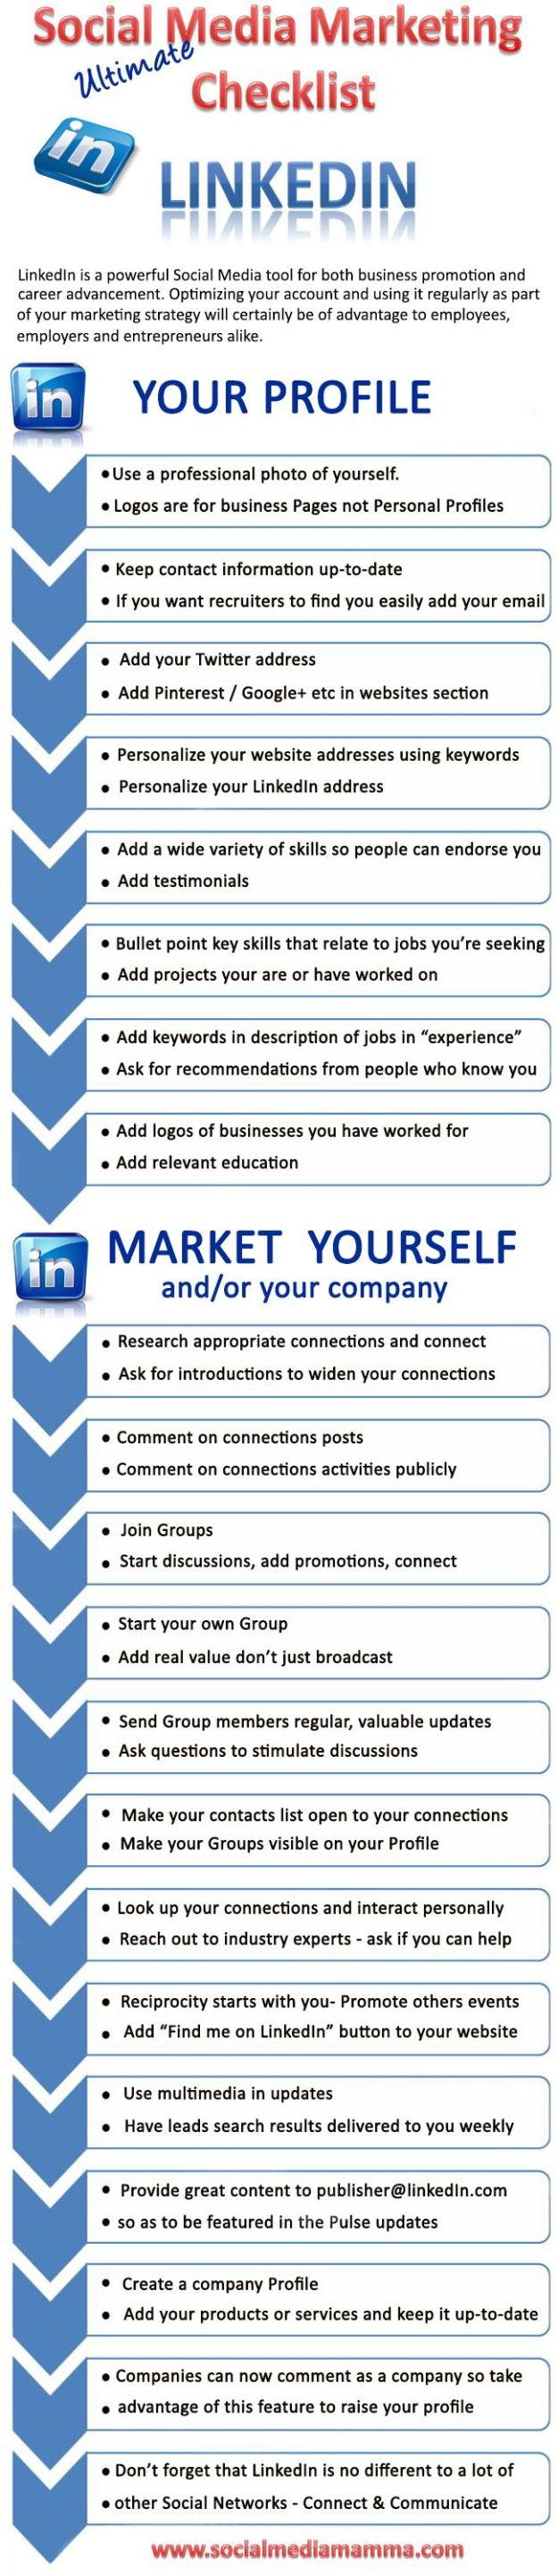 LinkedIn Checklist Social Media Marketing